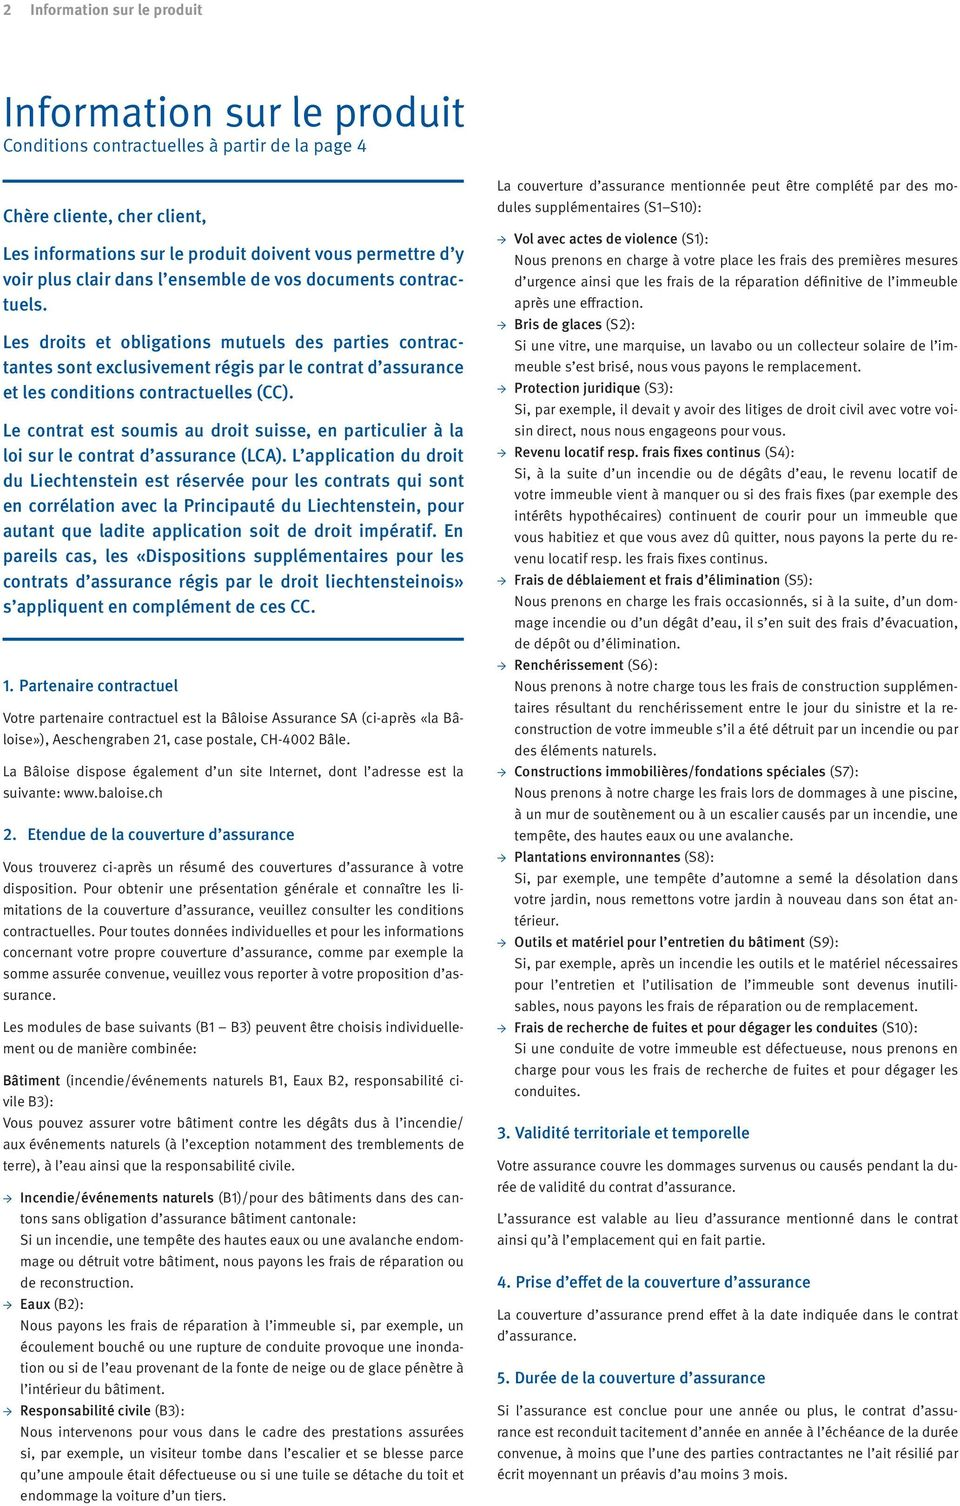 Les droits et obligations mutuels des parties contractantes sont exclusivement régis par le contrat d assurance et les conditions contractuelles (CC).